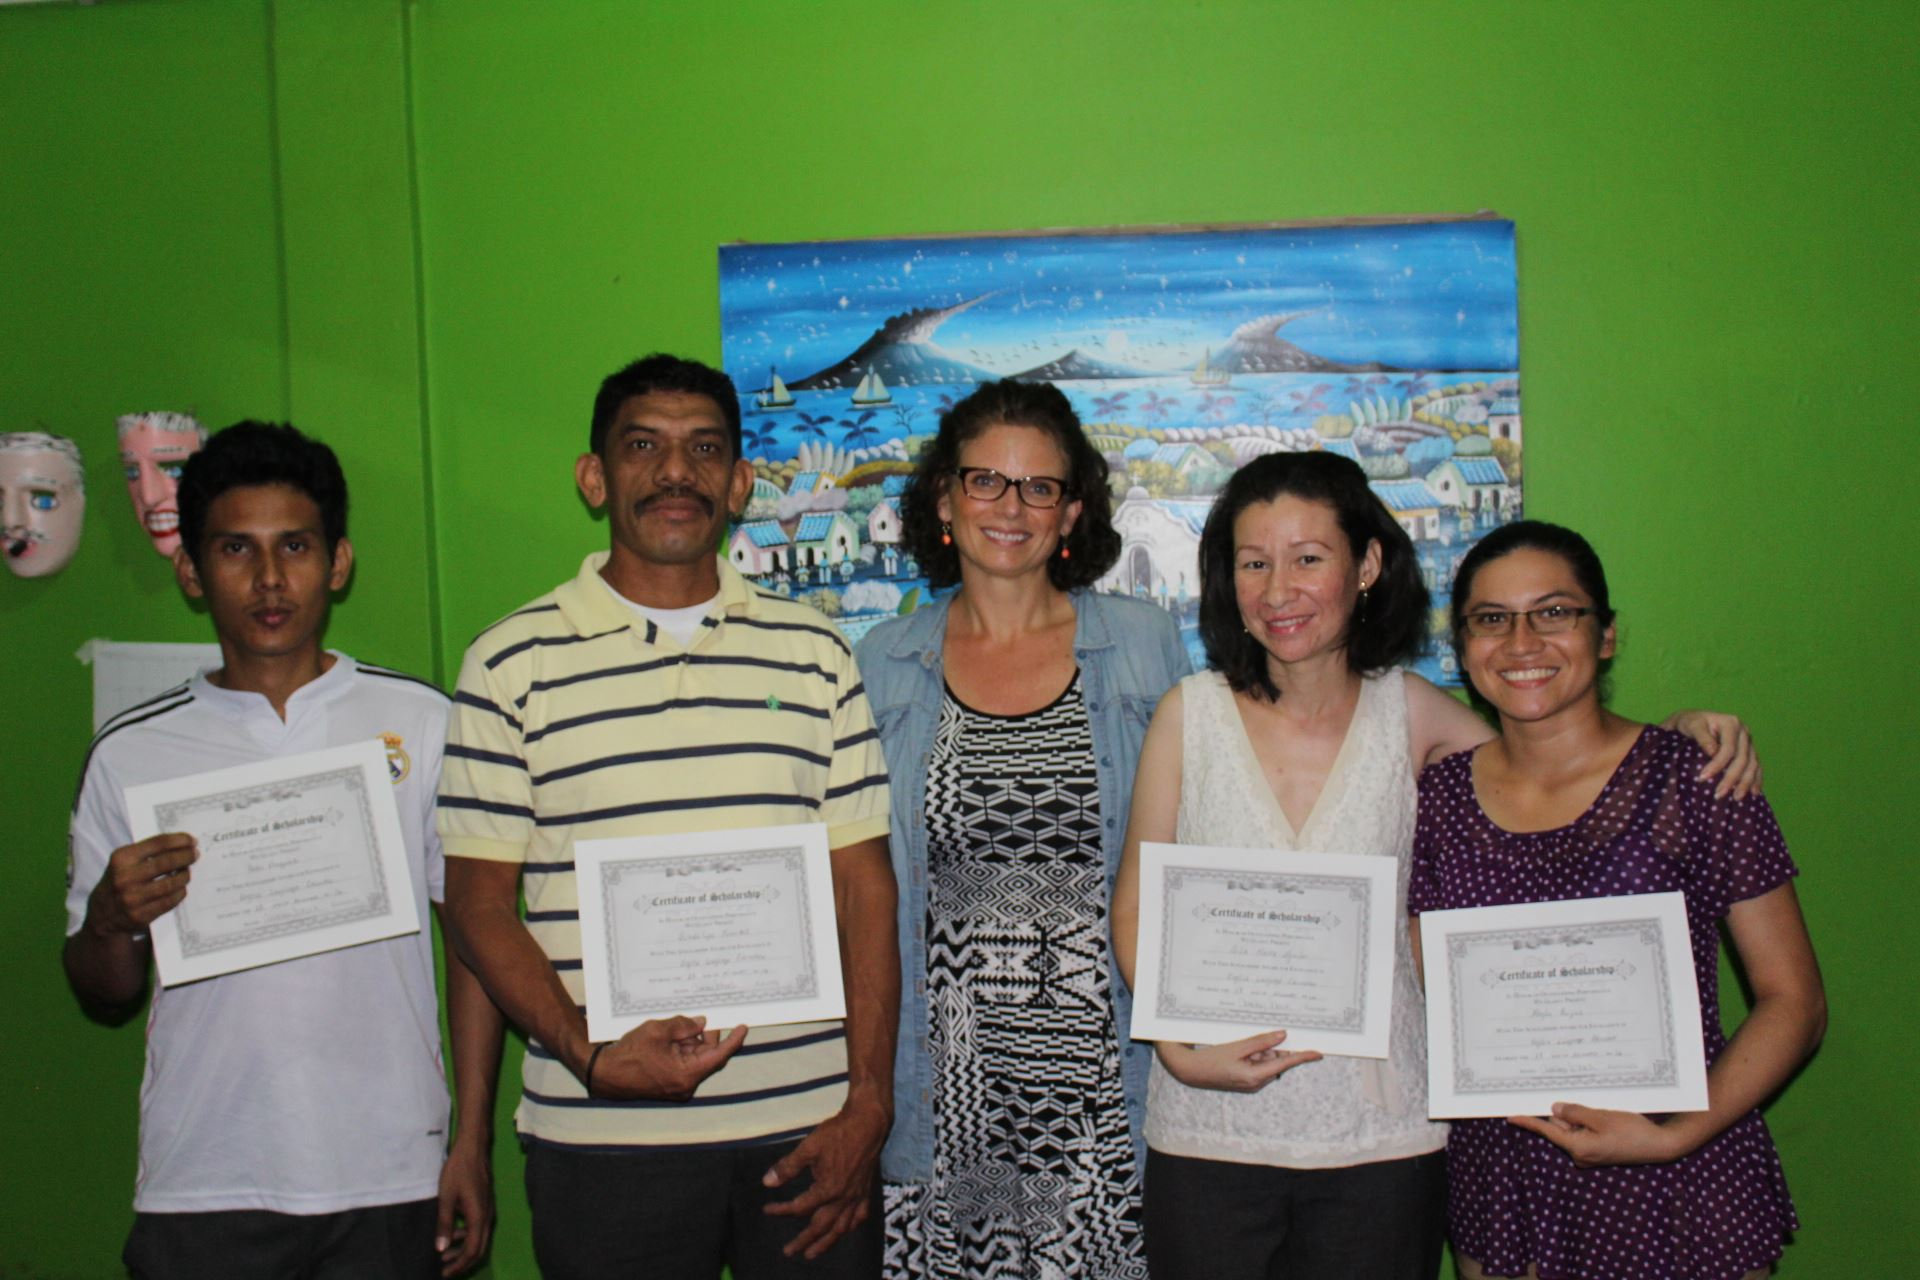 Courtney with English Scholarship recipients of Runucate in León, Nicaragua.